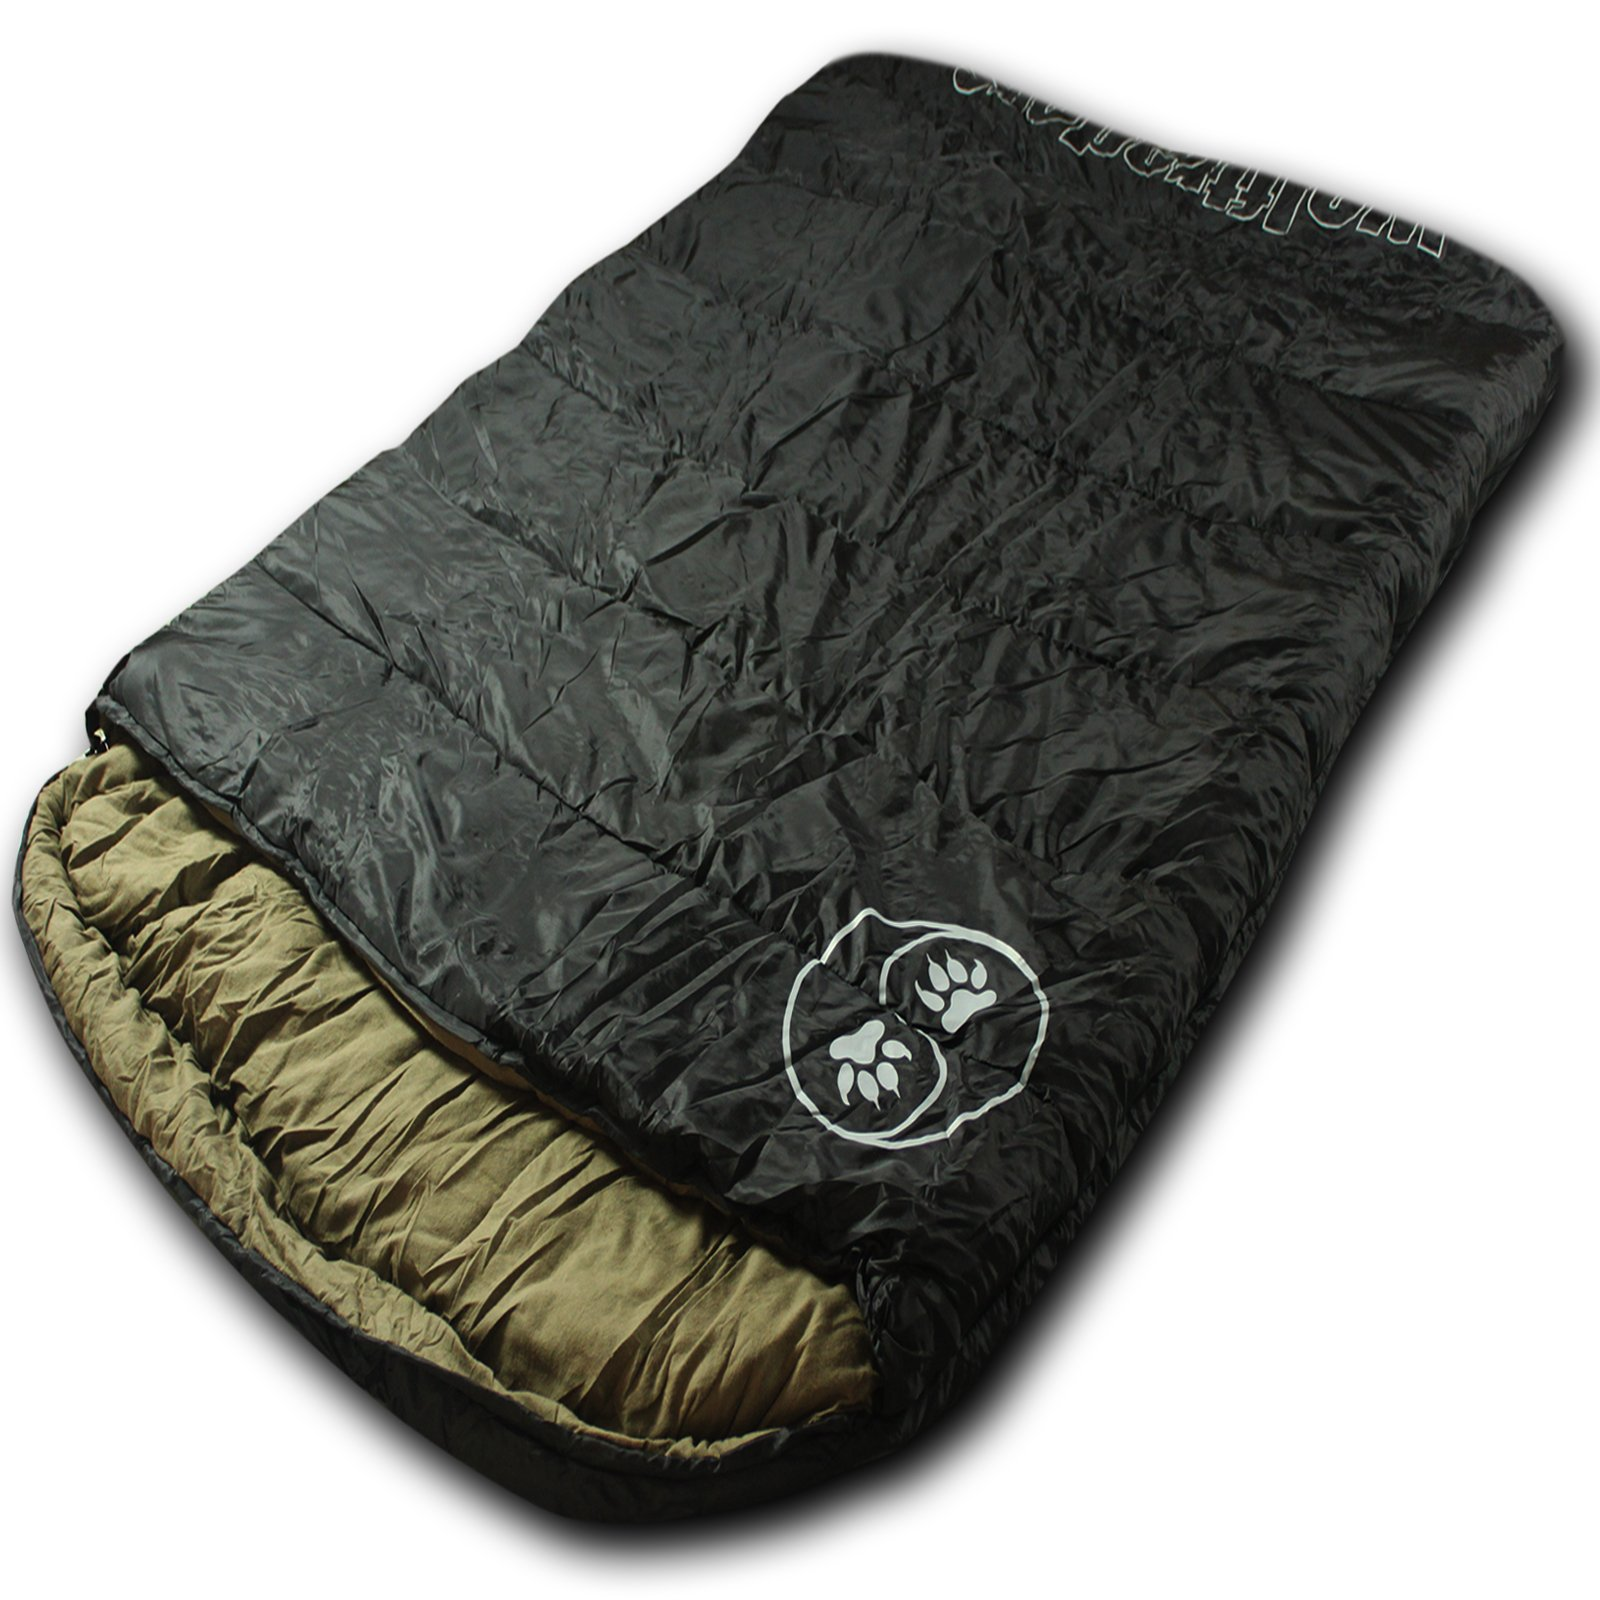 Wolftraders TwoWolves +20 Degree Premium Ripstop Two Person Sleeping Bag